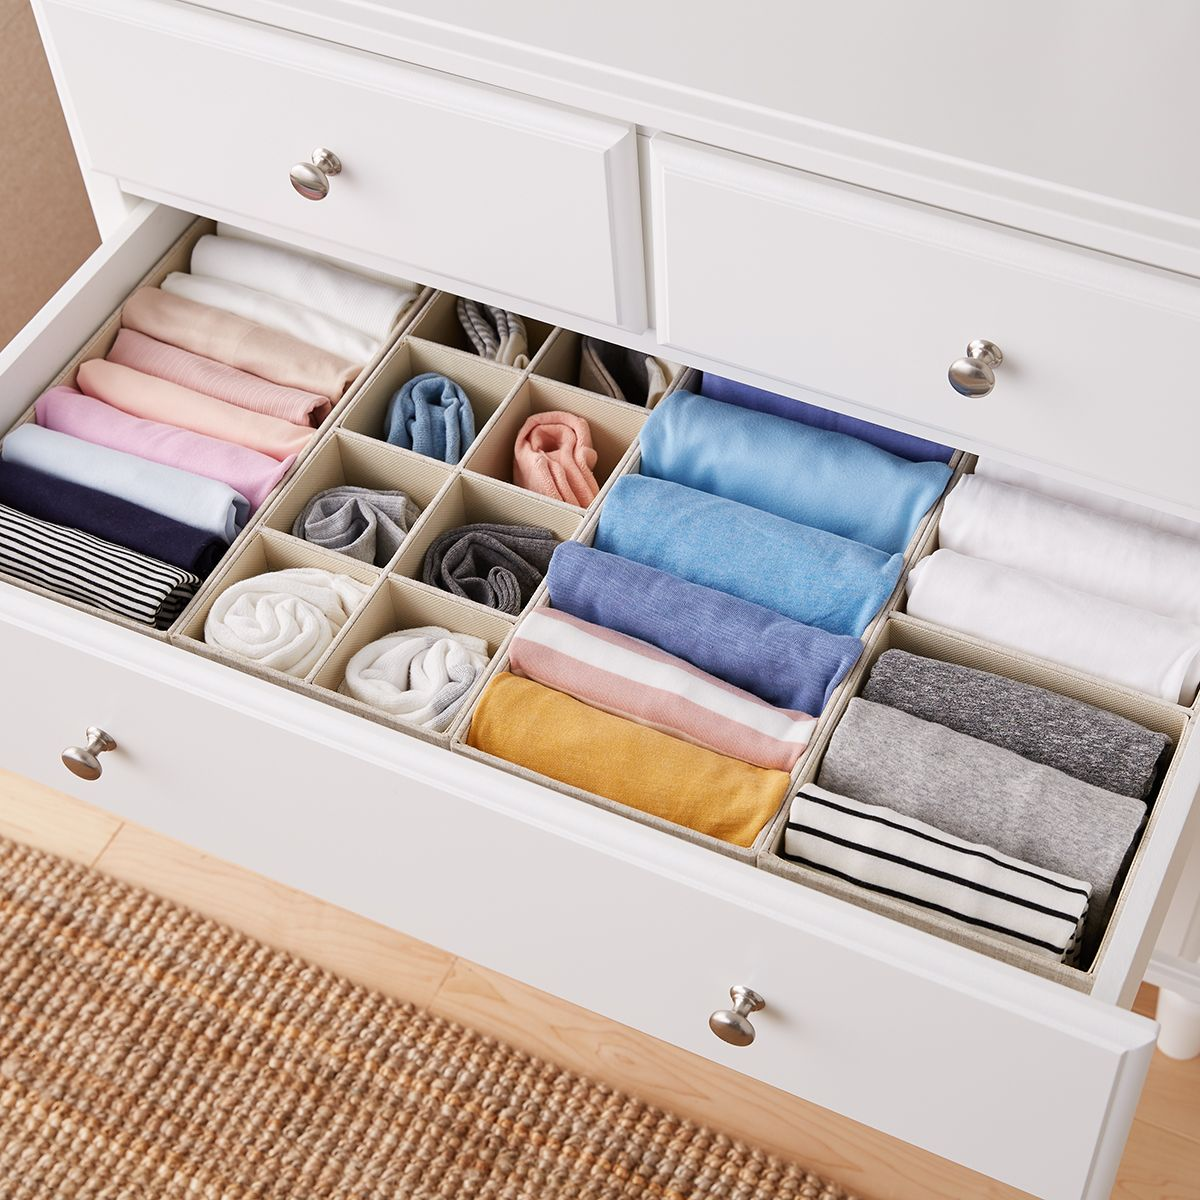 14 Best Drawer Organizer And Dividers 2020 The Strategist New York Magazine